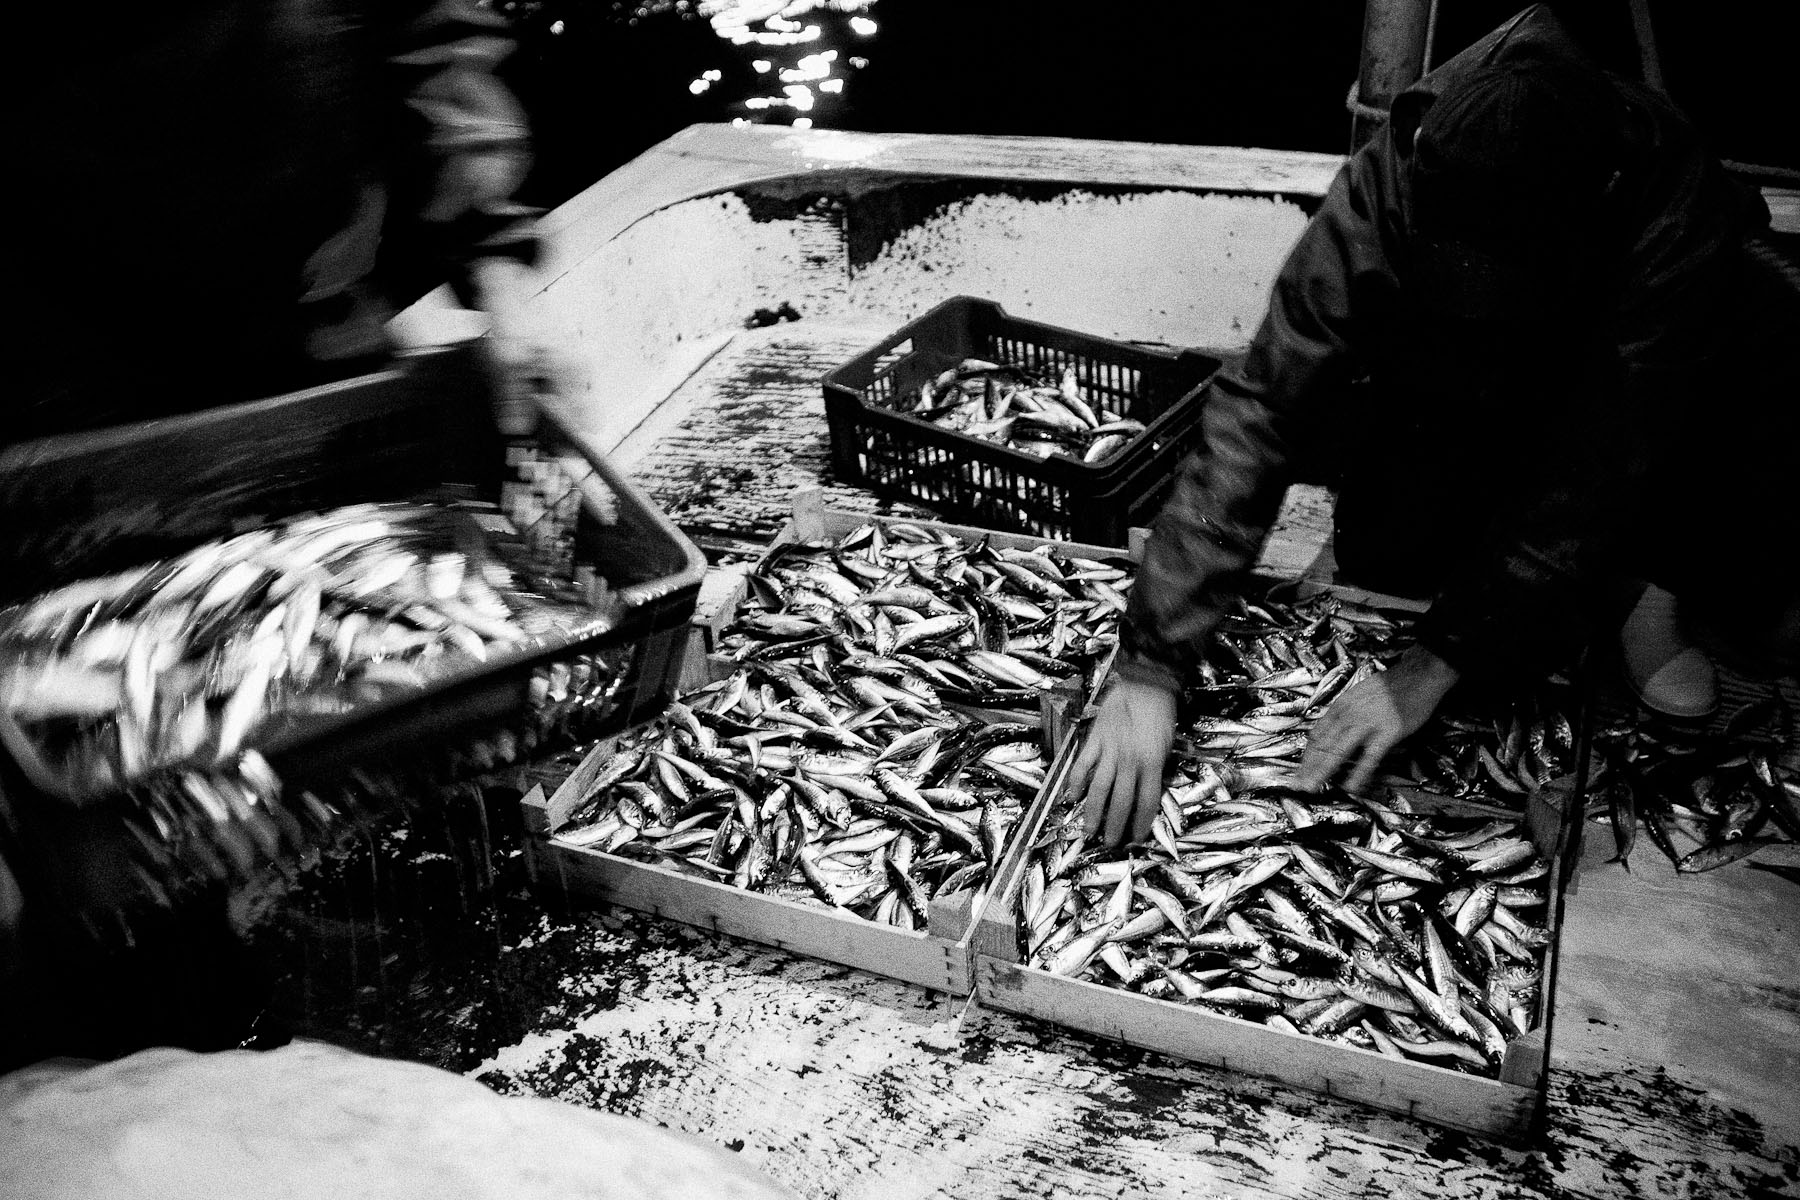 At the docks in Kumkapi, fishermen put the fish into wooden caskets that they carry to the distribution bazaar to sell them on the morning of 22nd June 2010, after they'had been fishing for the entire night.